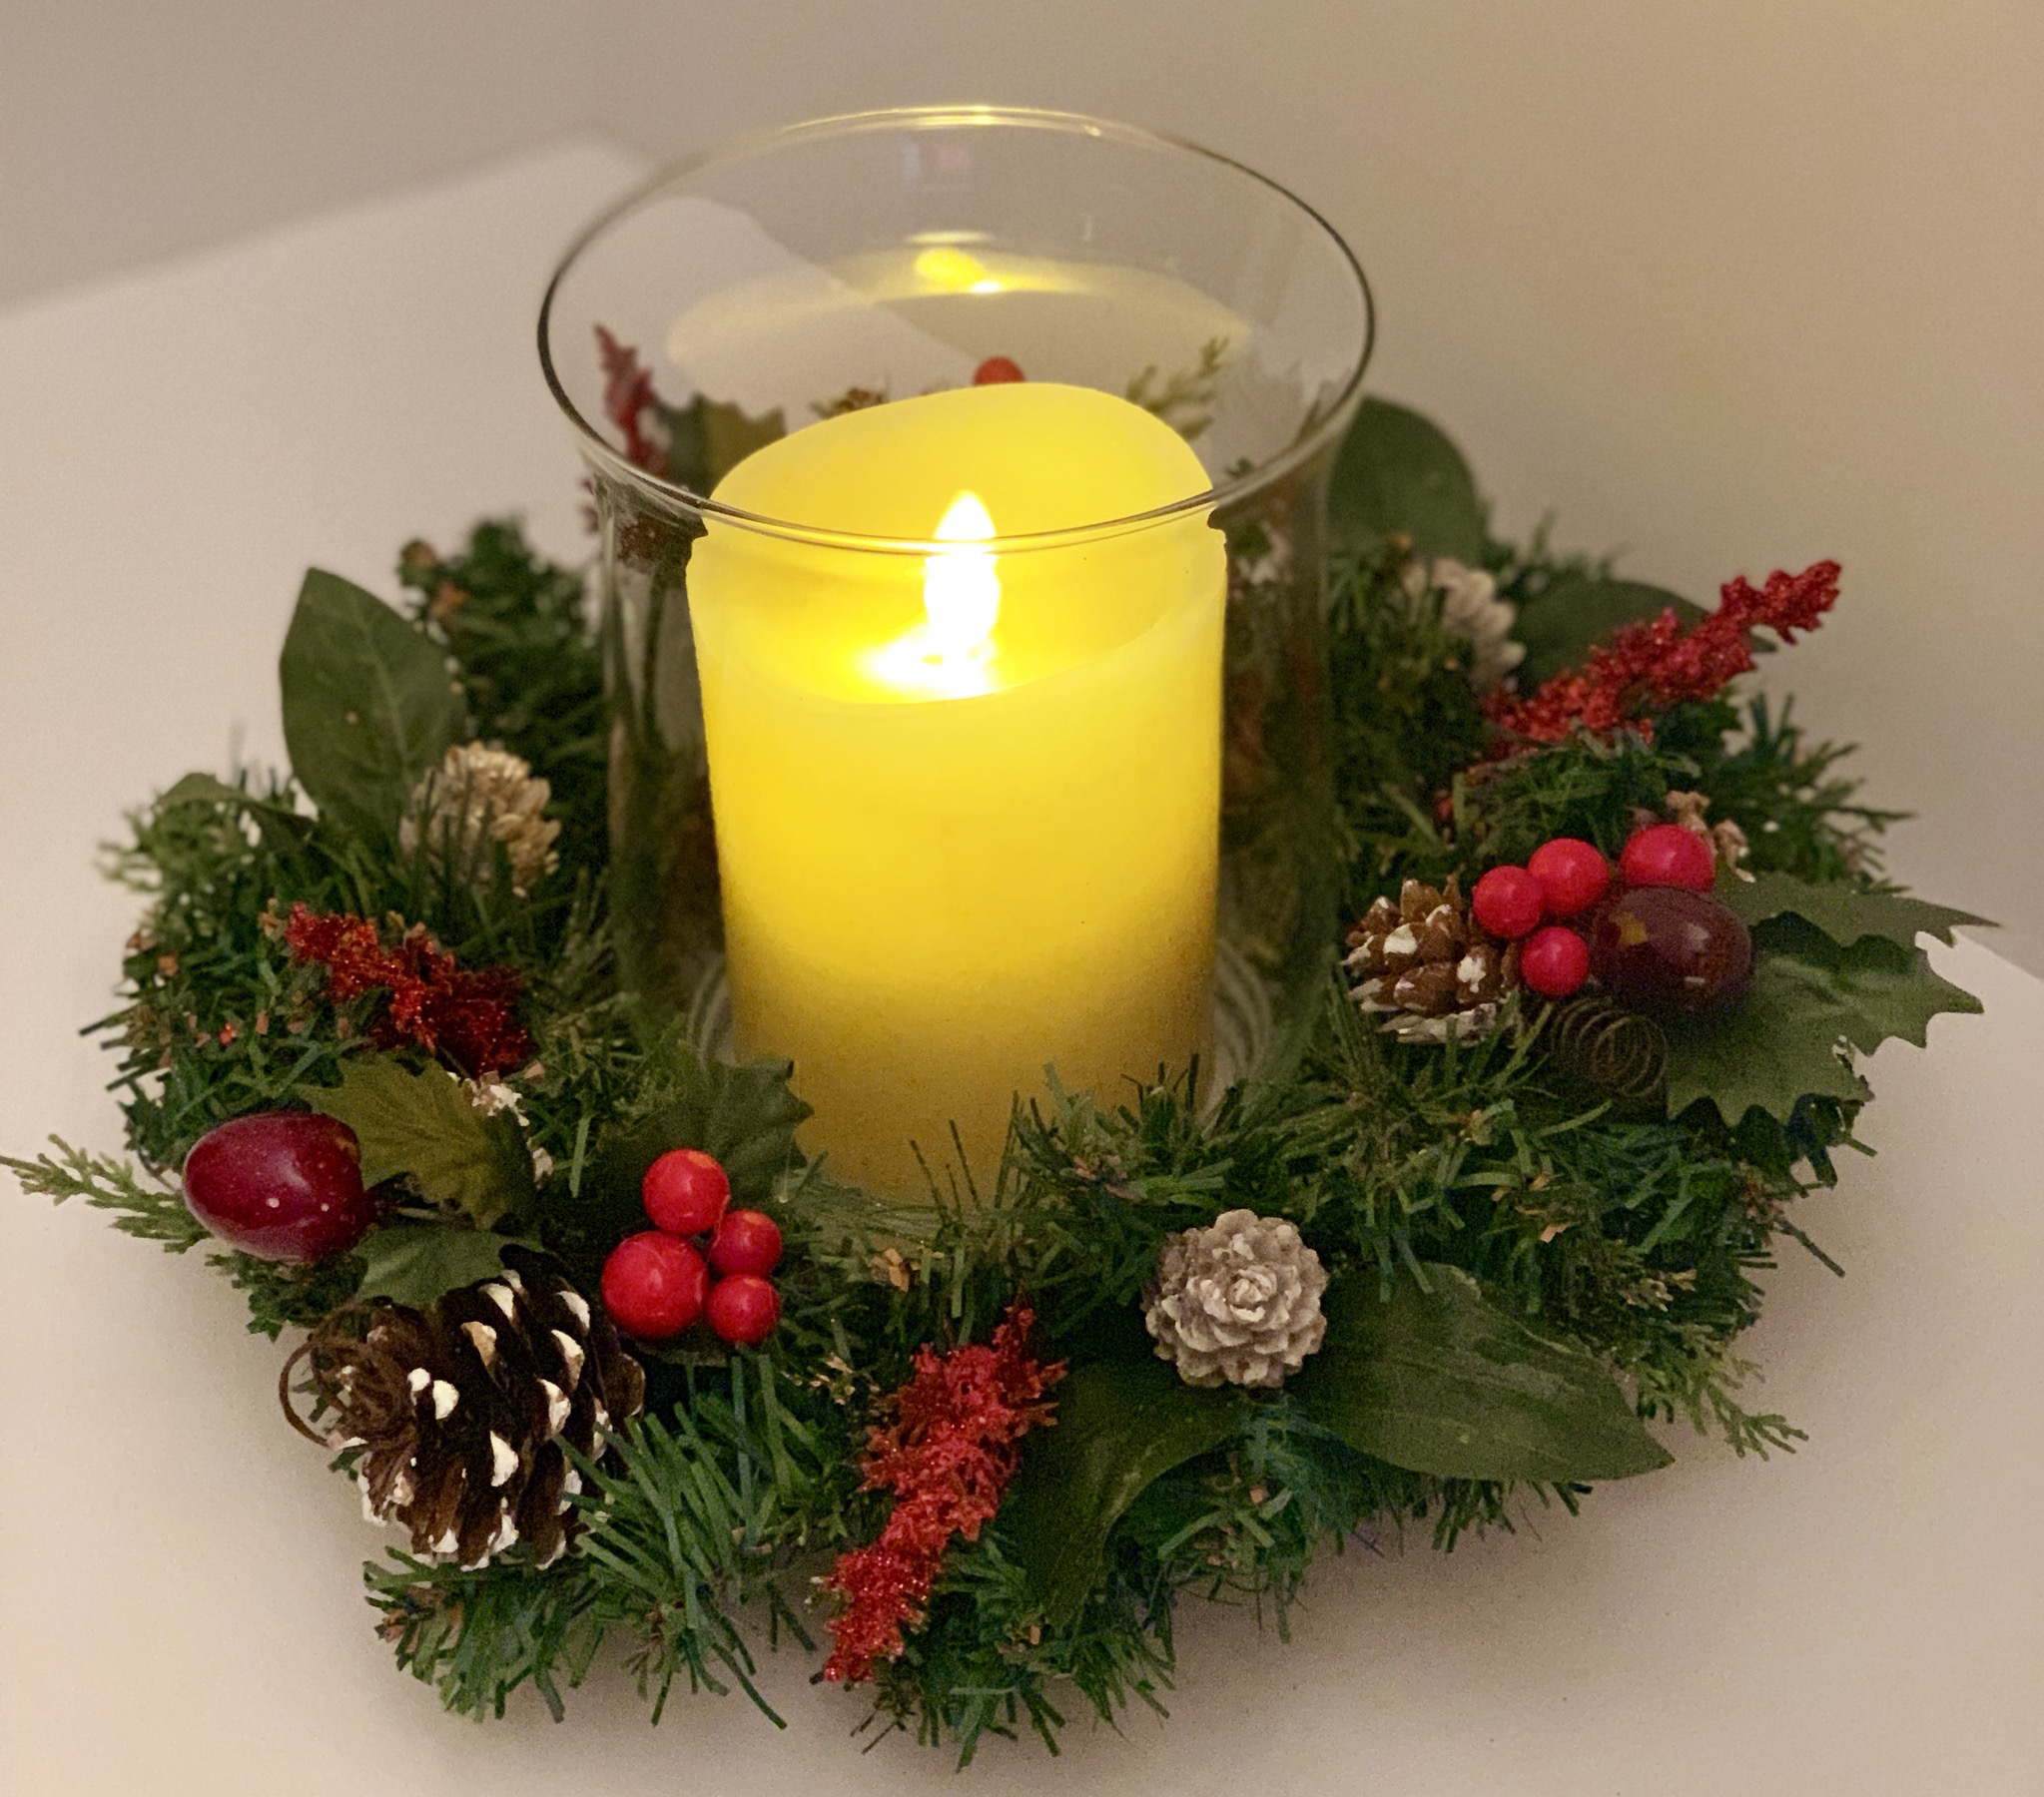 Christmas Evergreen Hurricane Centerpiece Candle Holder A Touch Of Faith Holiday Centerpieces Christmas Centerpieces Christmas Centers